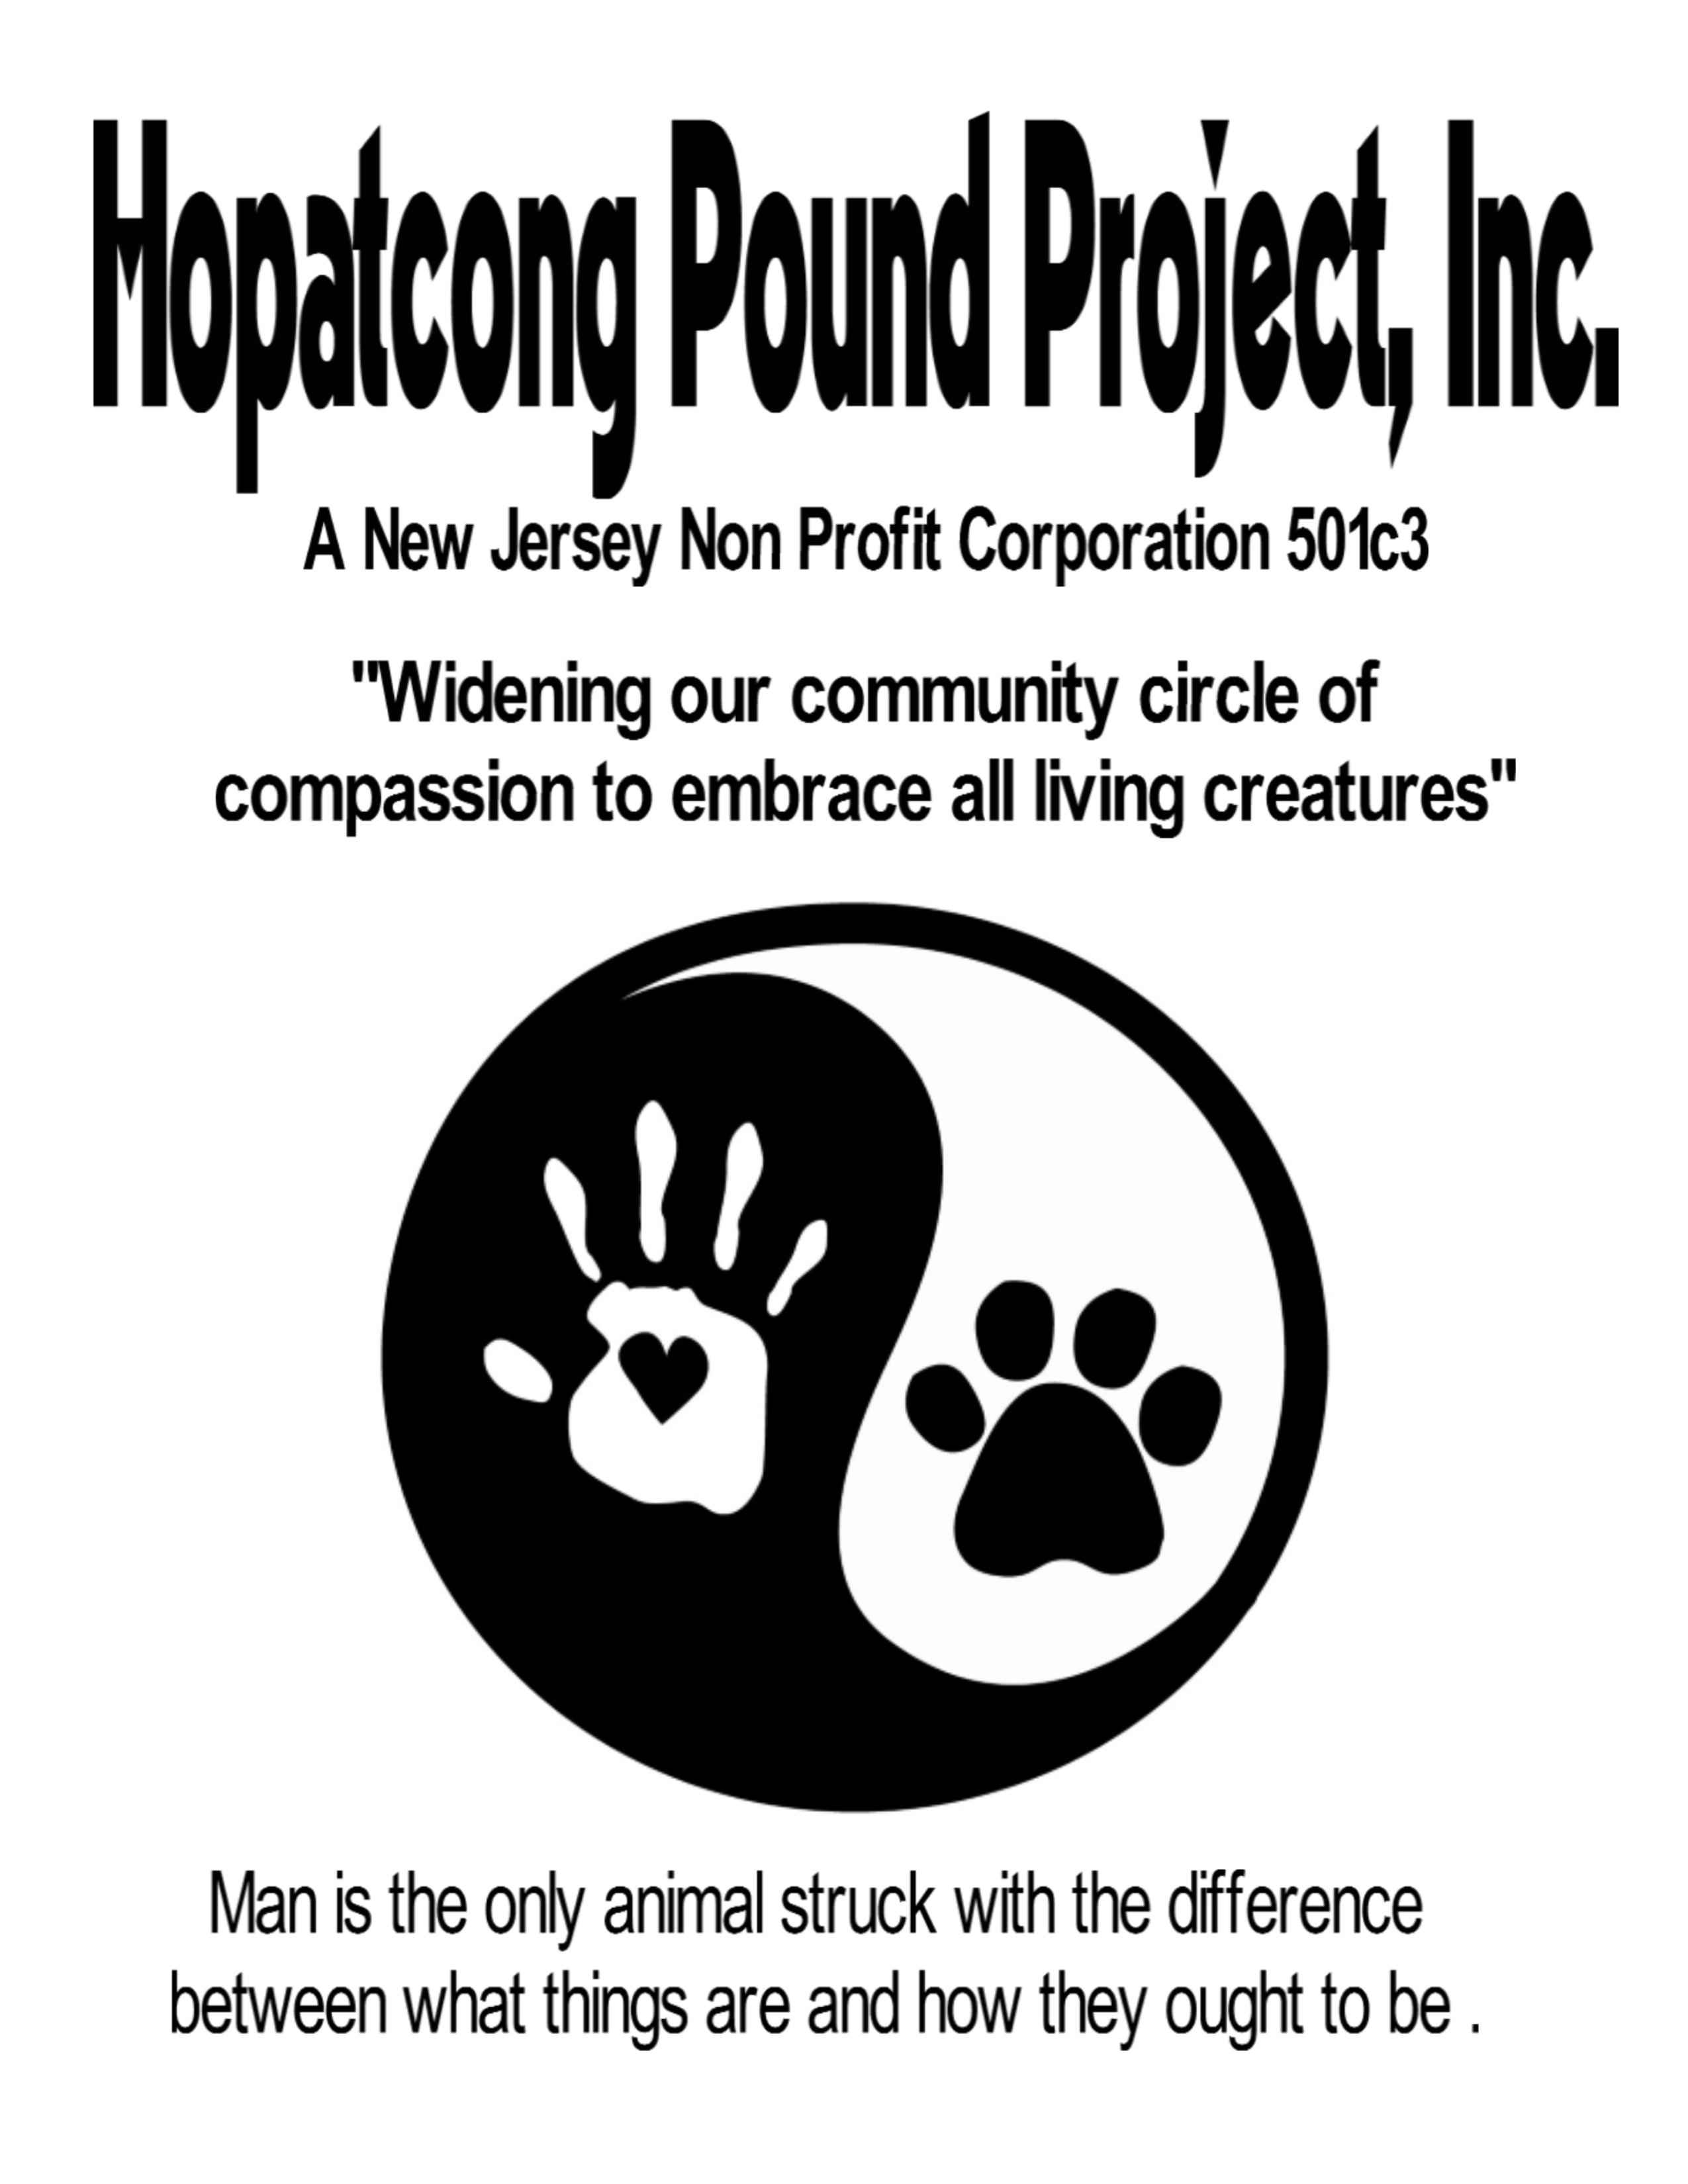 Hopatcong Pound Project , Inc